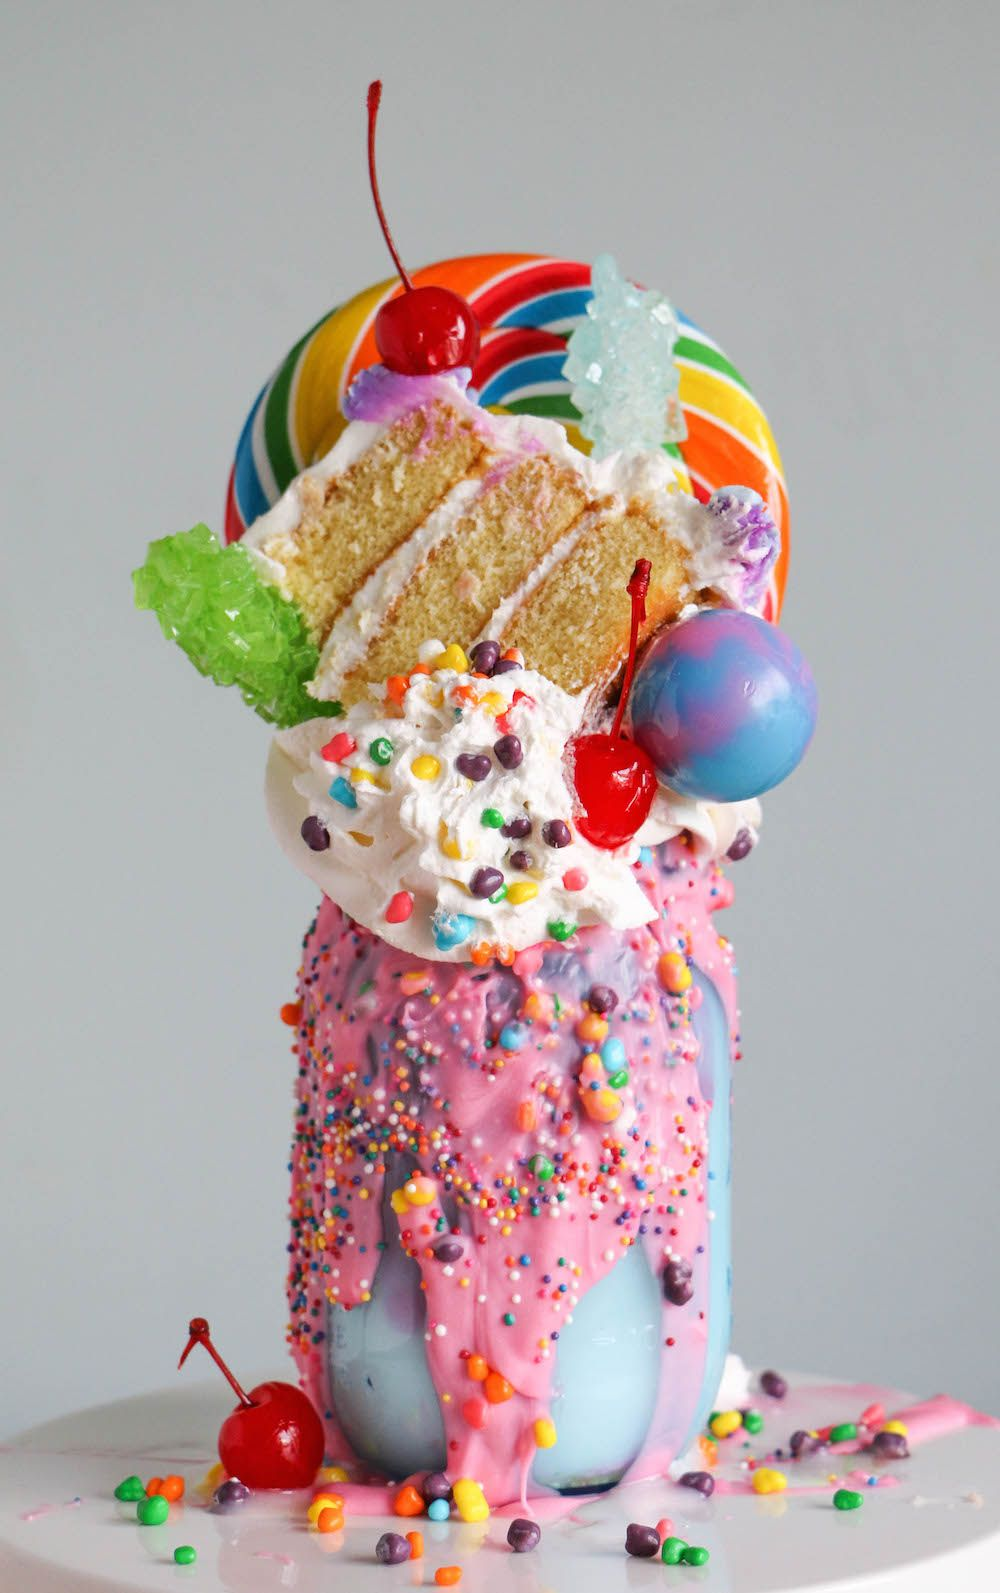 Freakshake Recipes You Should Try This Weekend